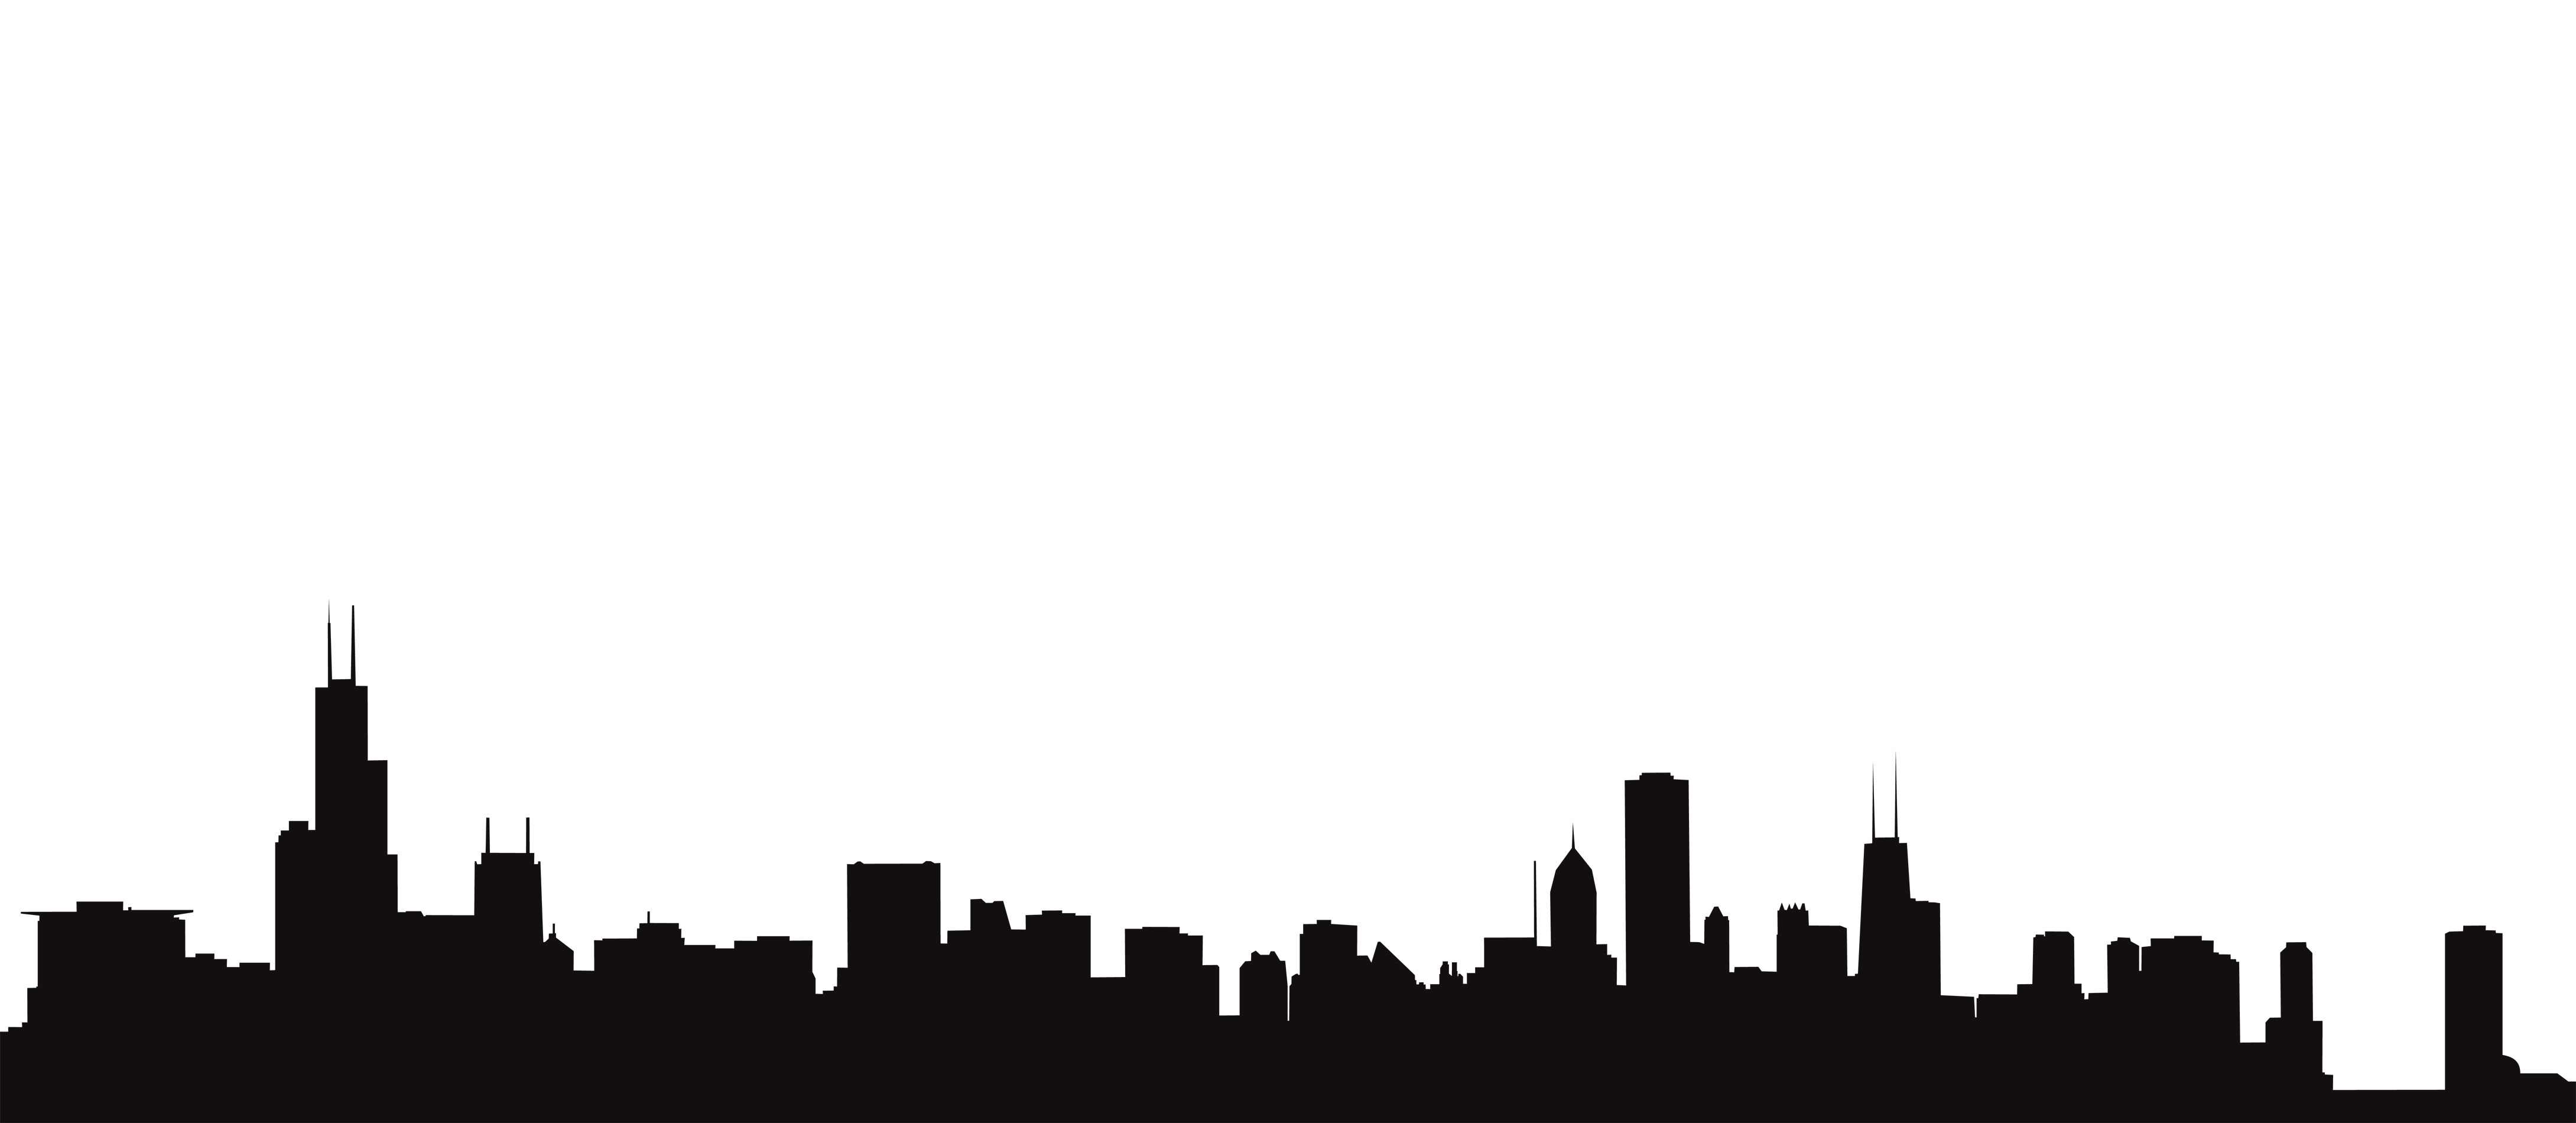 1000  images about City scapes on Pinterest   Chicago skyline, Clip art and Backgrounds